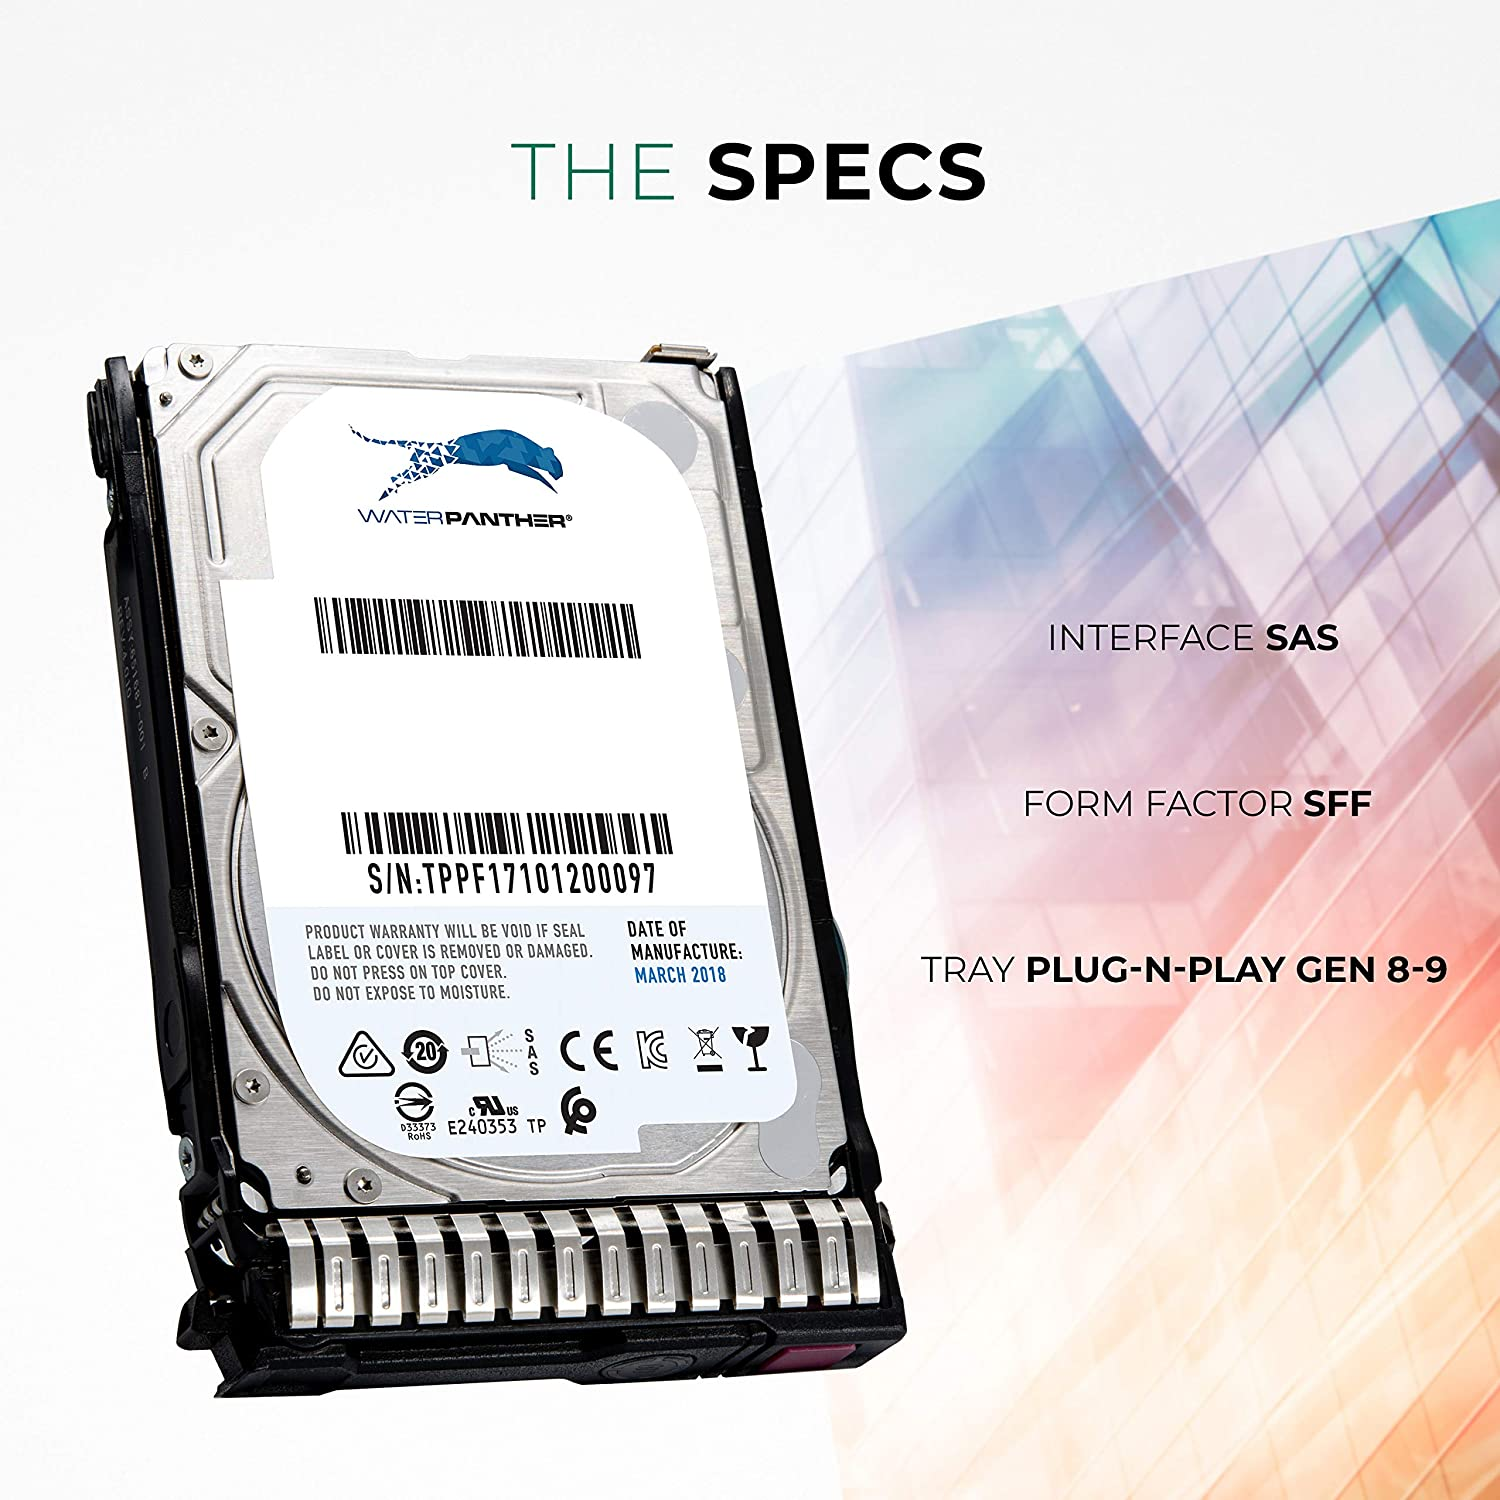 Enterprise Hard Drive in G8 G9 Tray Compatible with 653957-001 652583-B21 600 GB 10K RPM 512n SAS 6Gb//s 2.5-Inch HDD for HP Proliant Servers